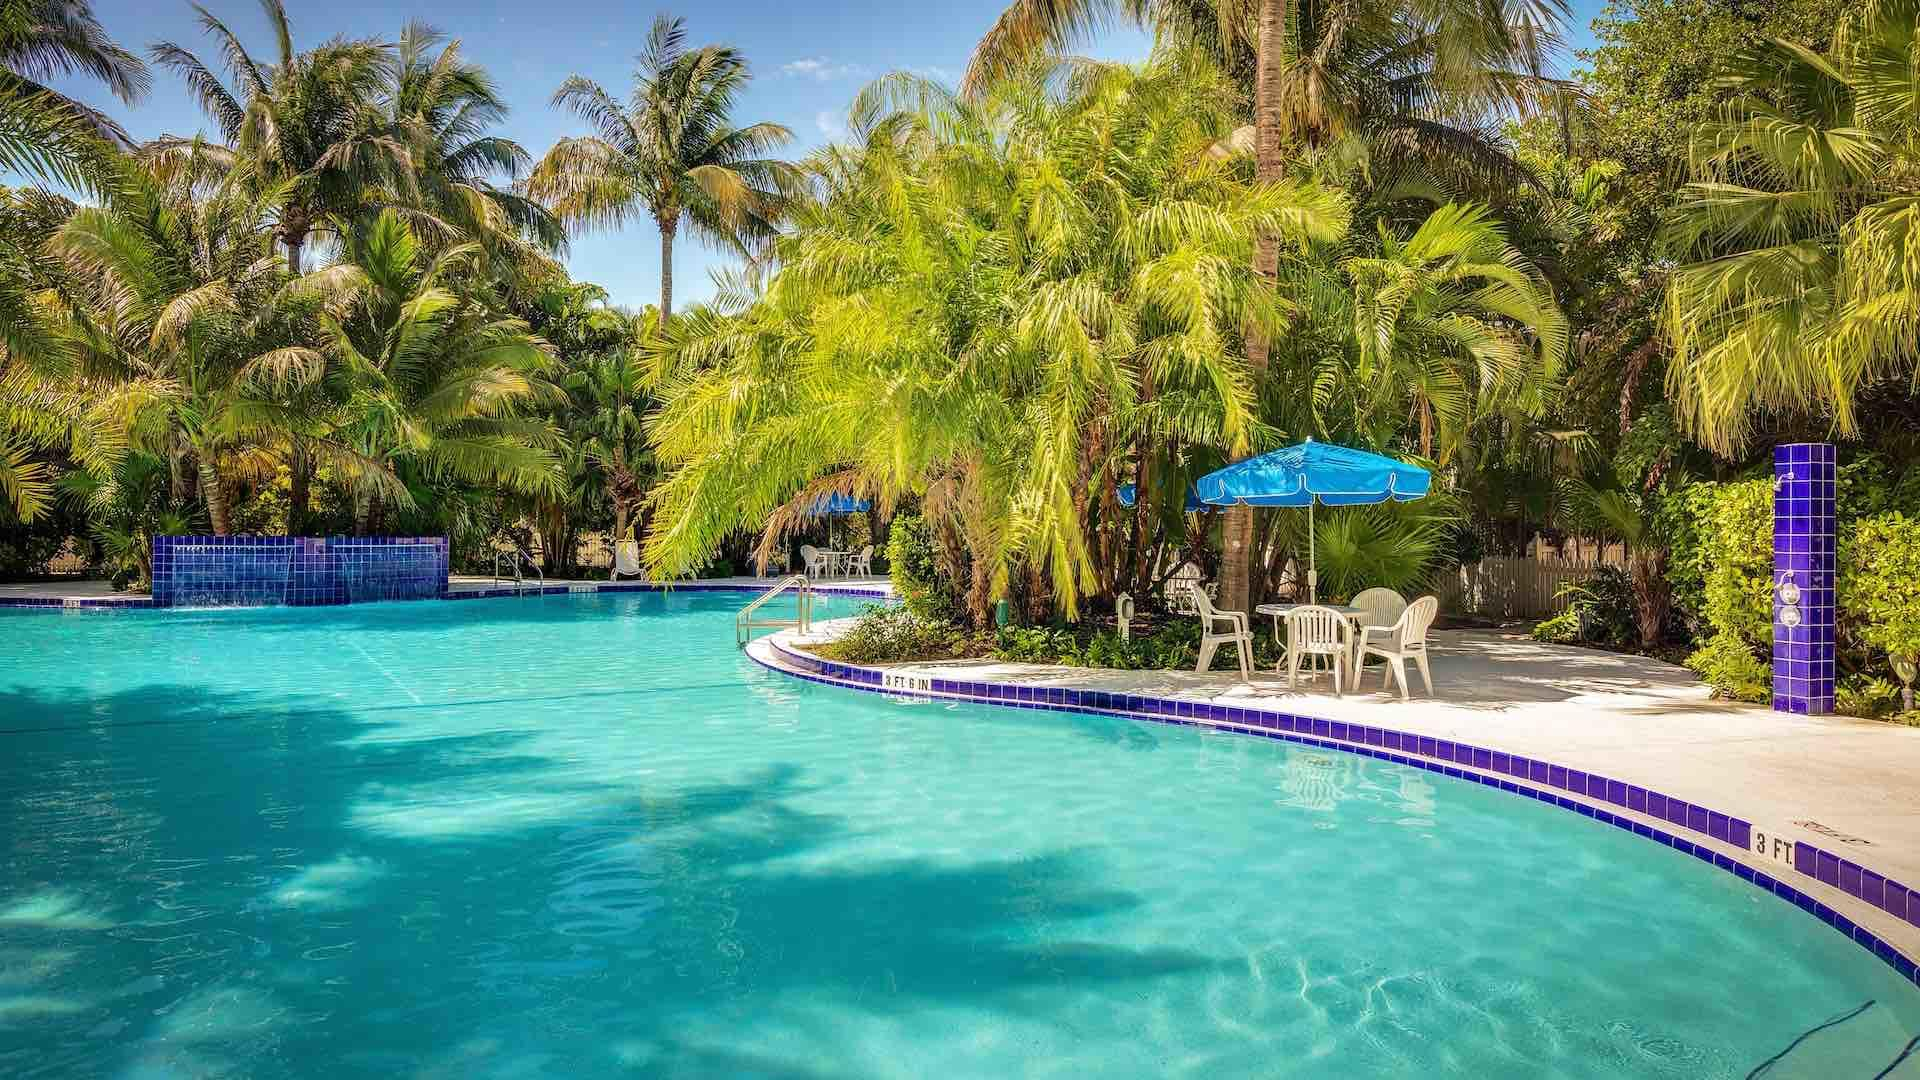 Reserved for residents & guests, the pool is one of the largest in Key West...